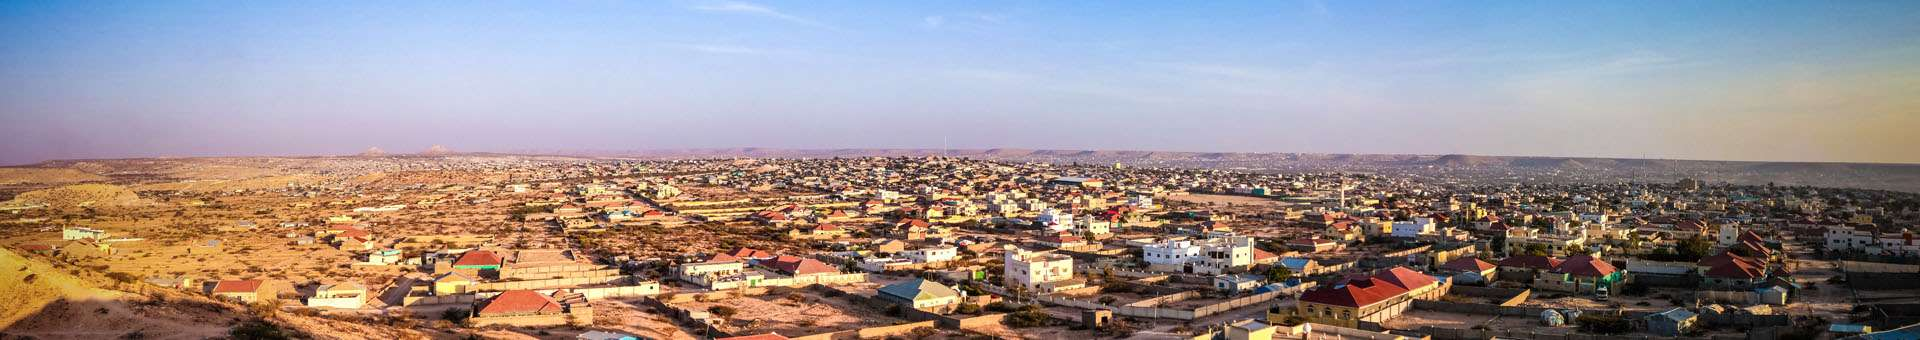 Search Whois information of domain names in Somalia